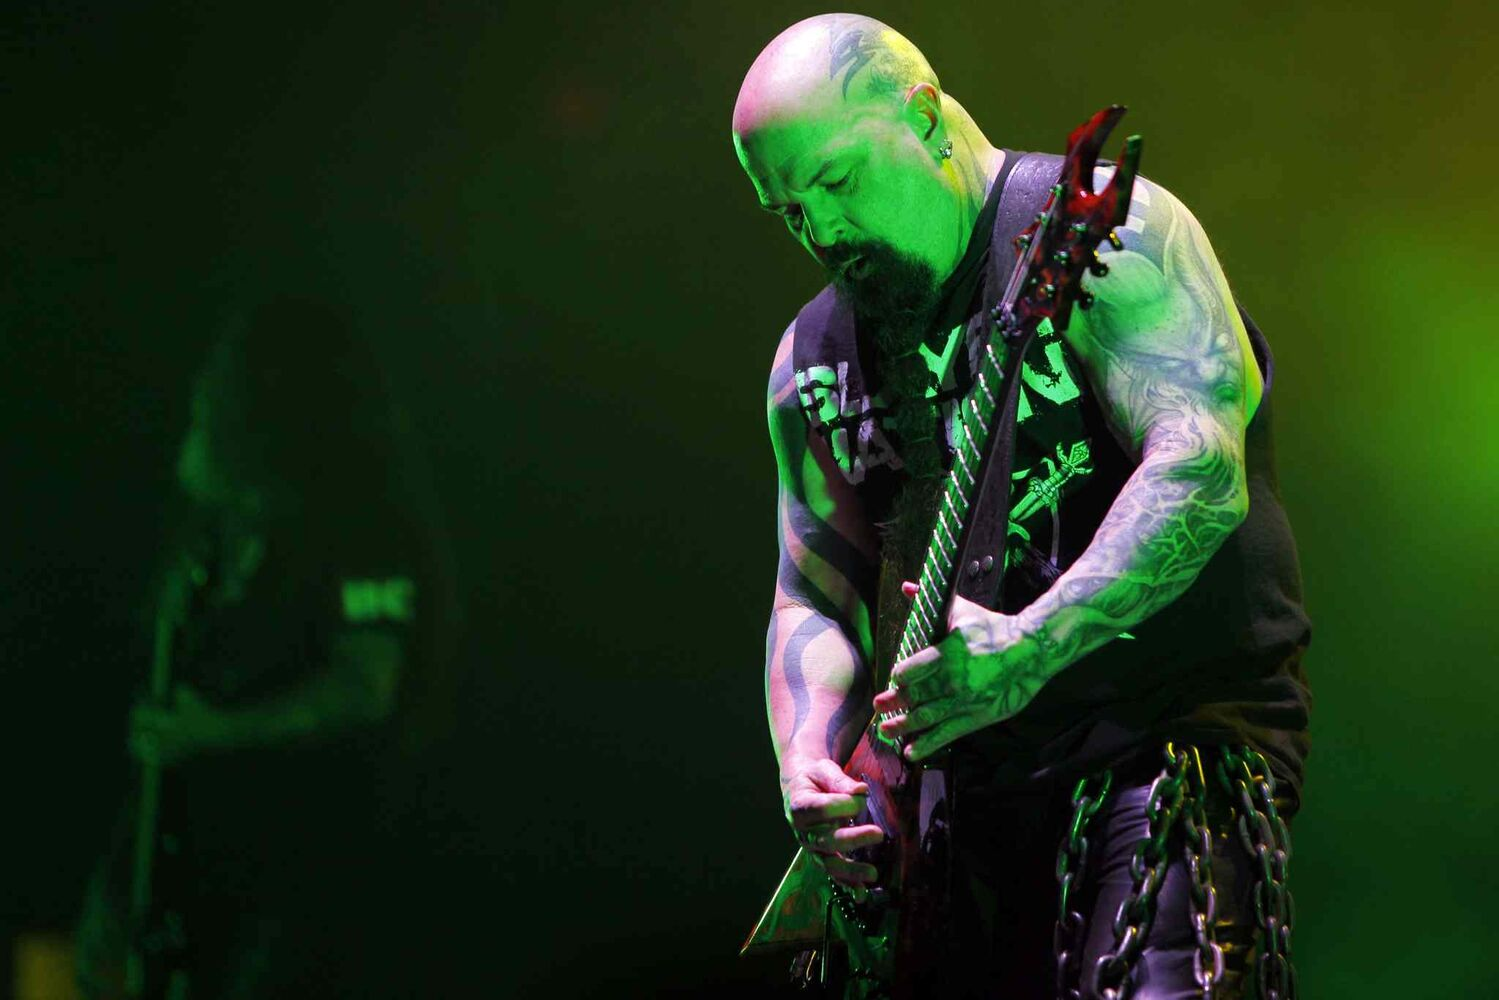 Guitarist Kerry King busts out a guitar solo.